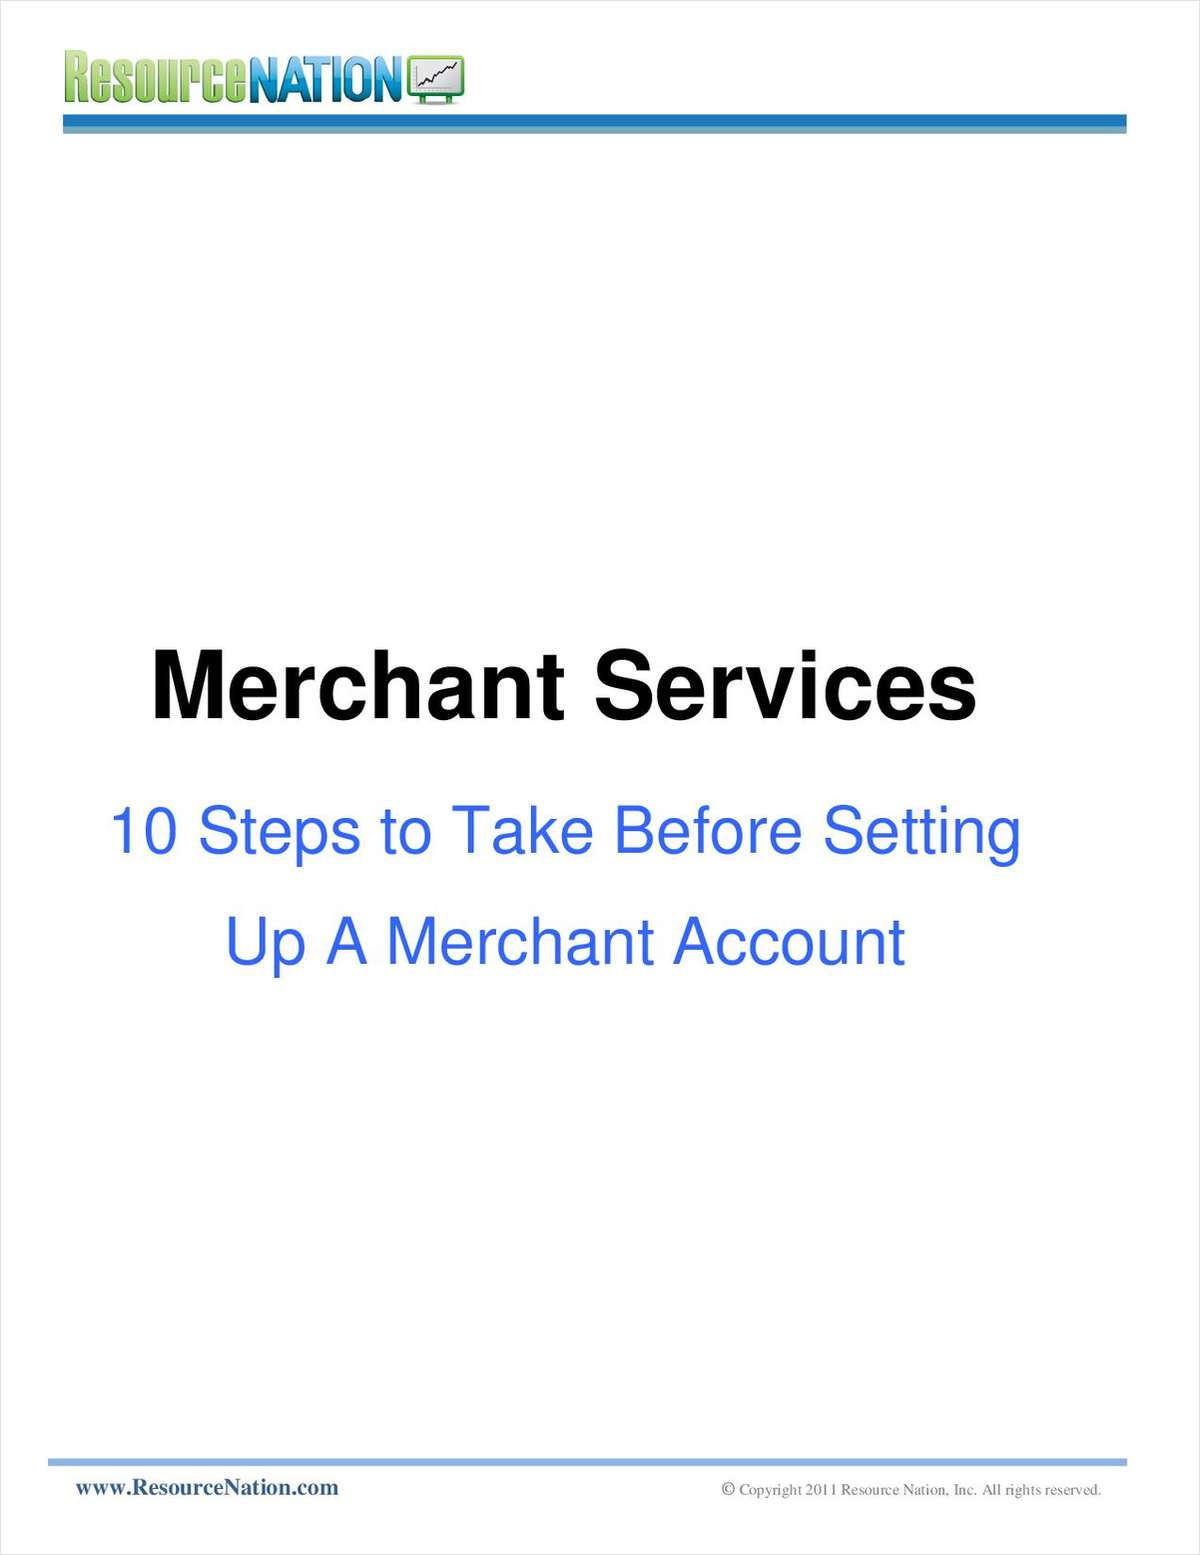 10 Steps to Take Before Setting Up A Merchant Account